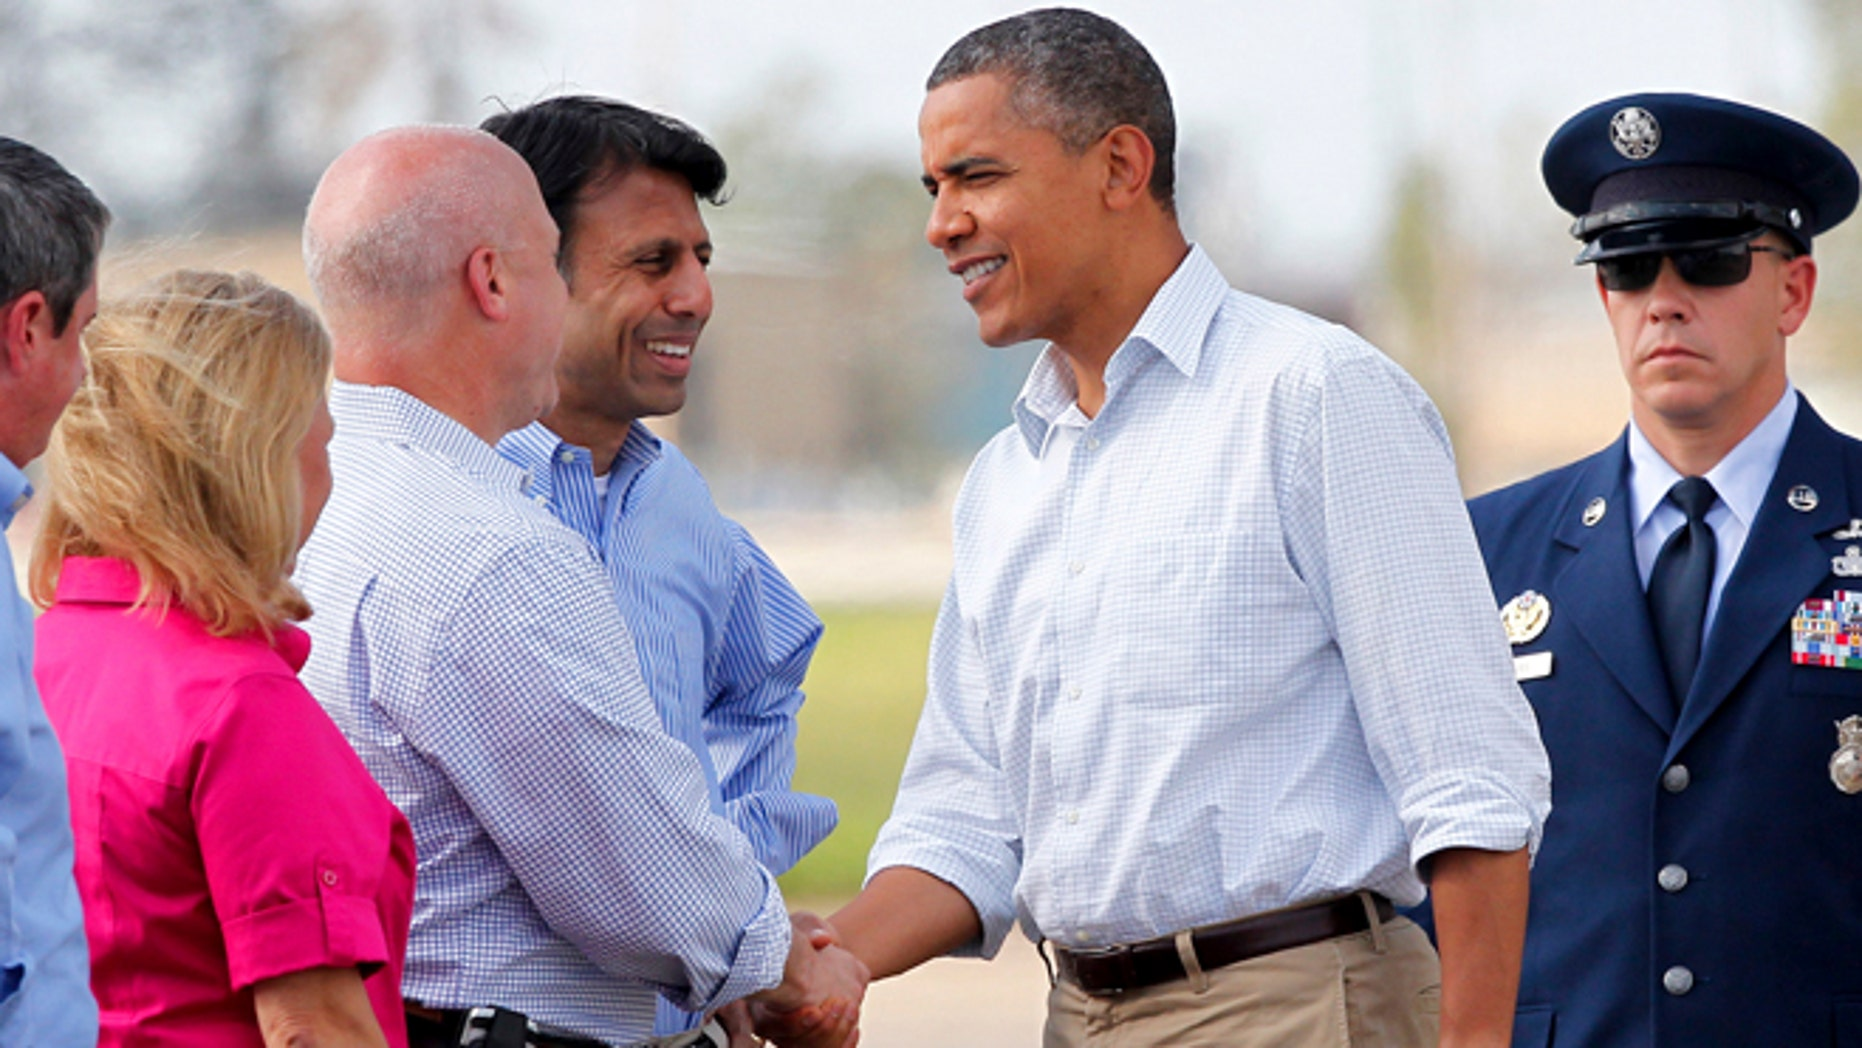 Sept. 3, 2012: President Barack Obama greets New Orleans Mayor Mitch Landrieu, as Louisiana Gov. Bobby Jindal, center, and Sen. Mary Landrieu, D-La., watch as he arrives at Louis Armstrong New Orleans International Airport in Kenner, La.